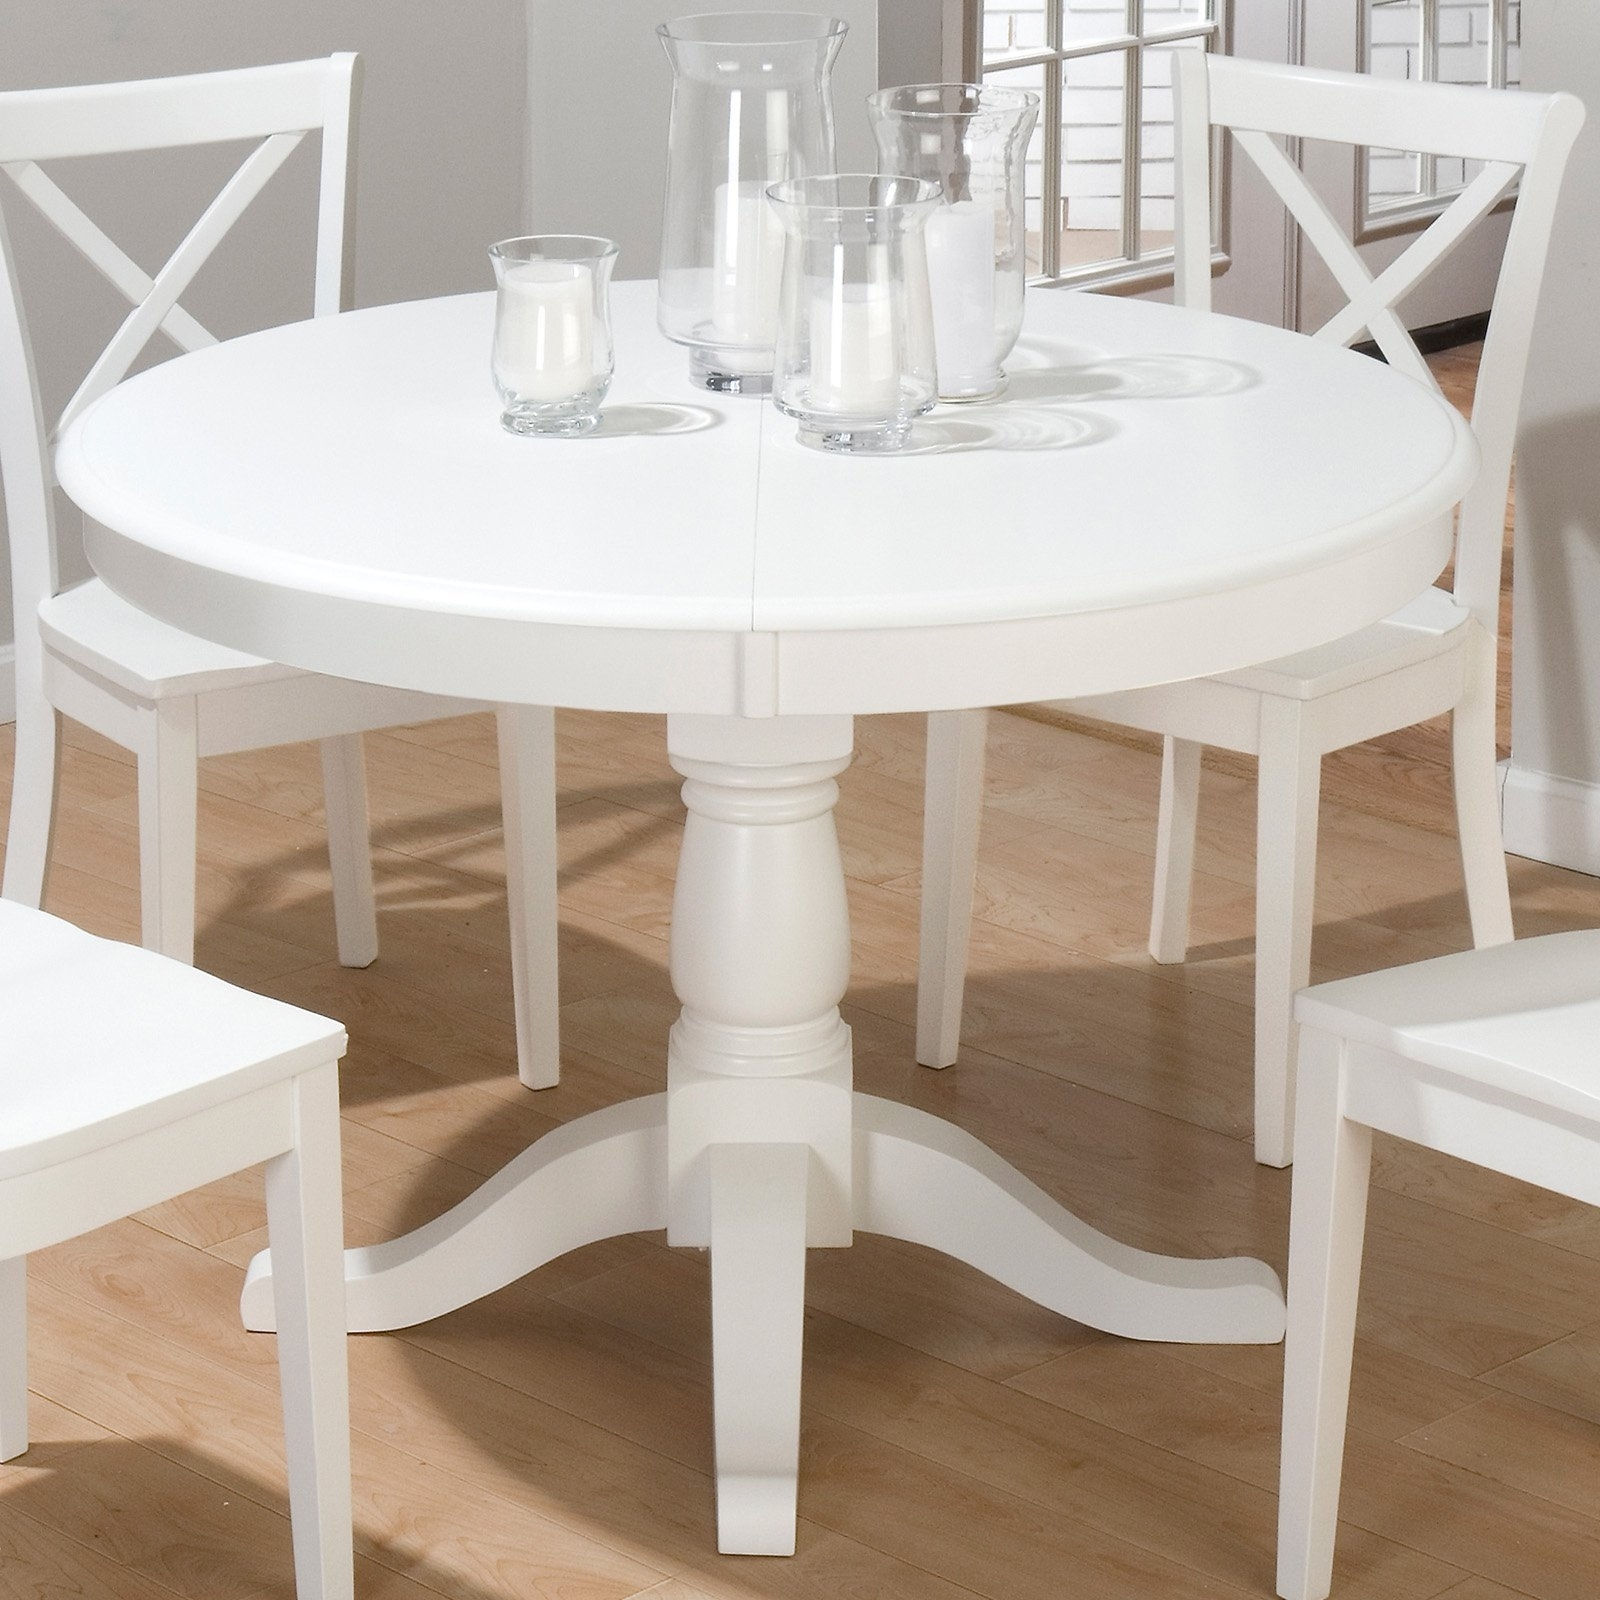 Large White Round Dining Tables For 2017 Round White Dining Tables Table Seats 6 And Chairs For Sale Sets (View 12 of 25)